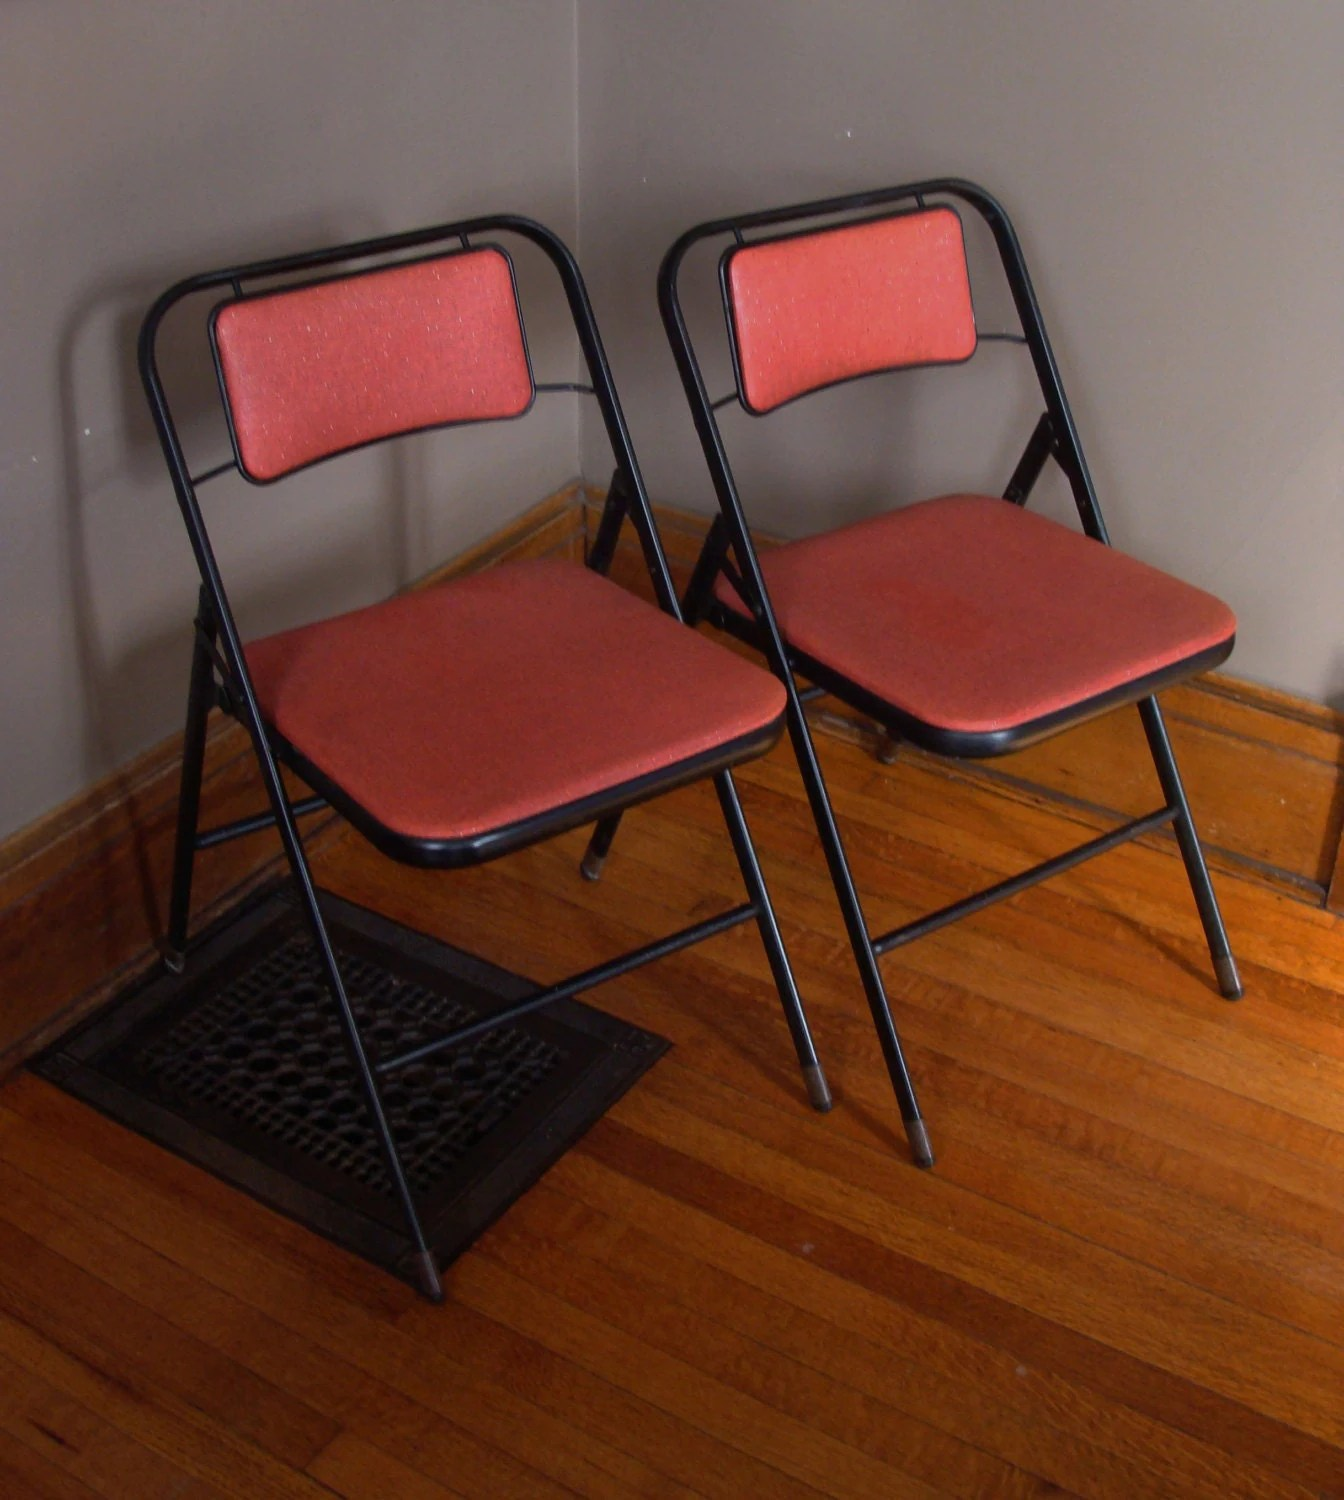 Folding Card Table And Chairs Vintage Metal Folding Chairs Card Table Chairs Samsonite